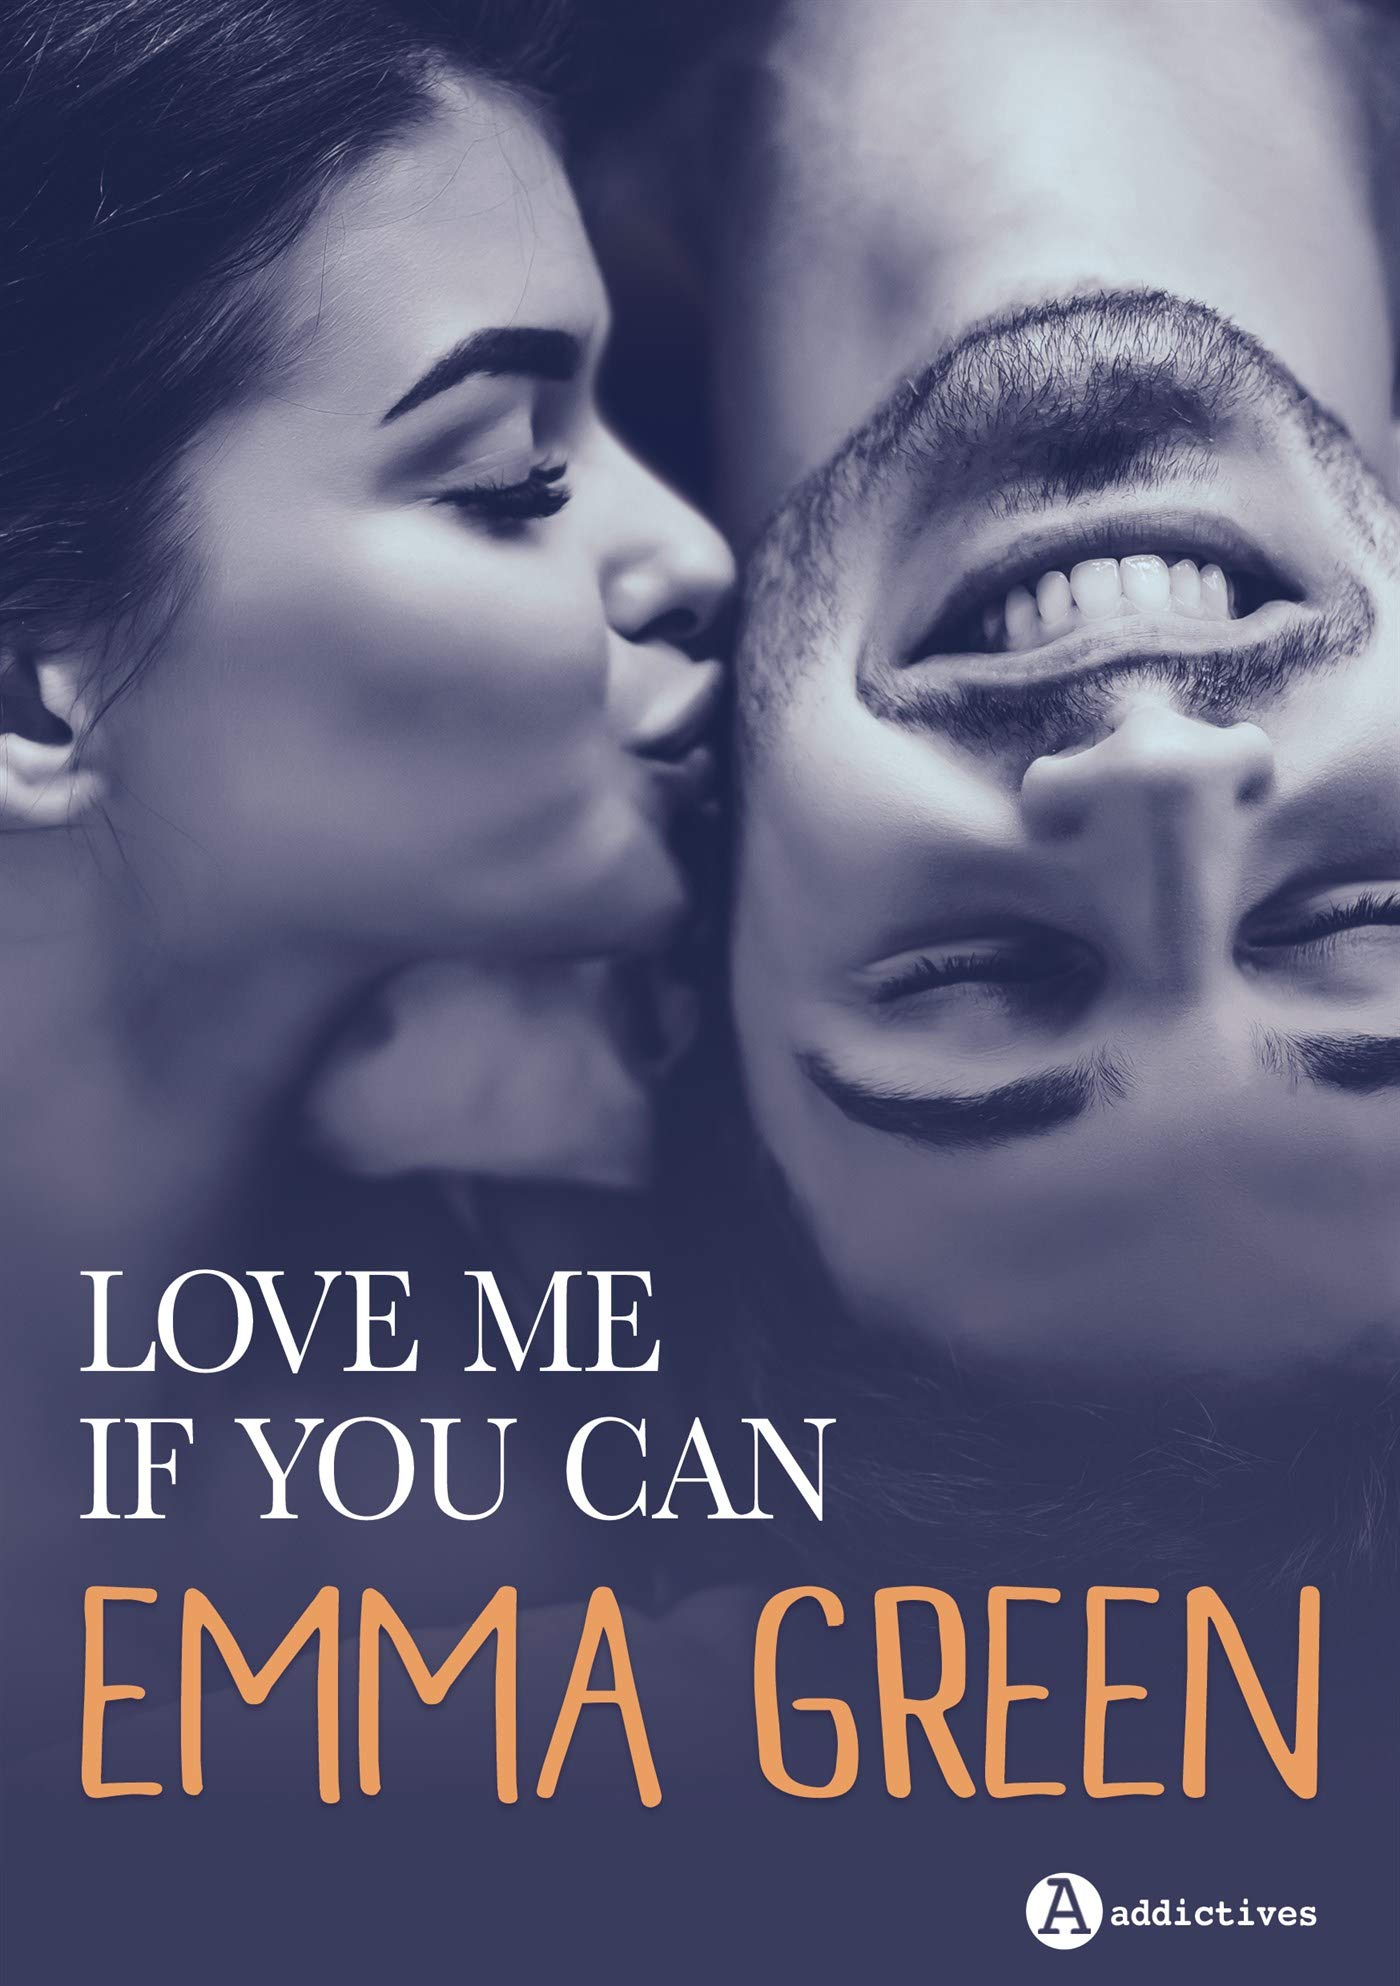 Love me if you can Broché – 1 novembre 2018 Editions Addictives 2371261378 Littérature sentimentale Roman d' amour